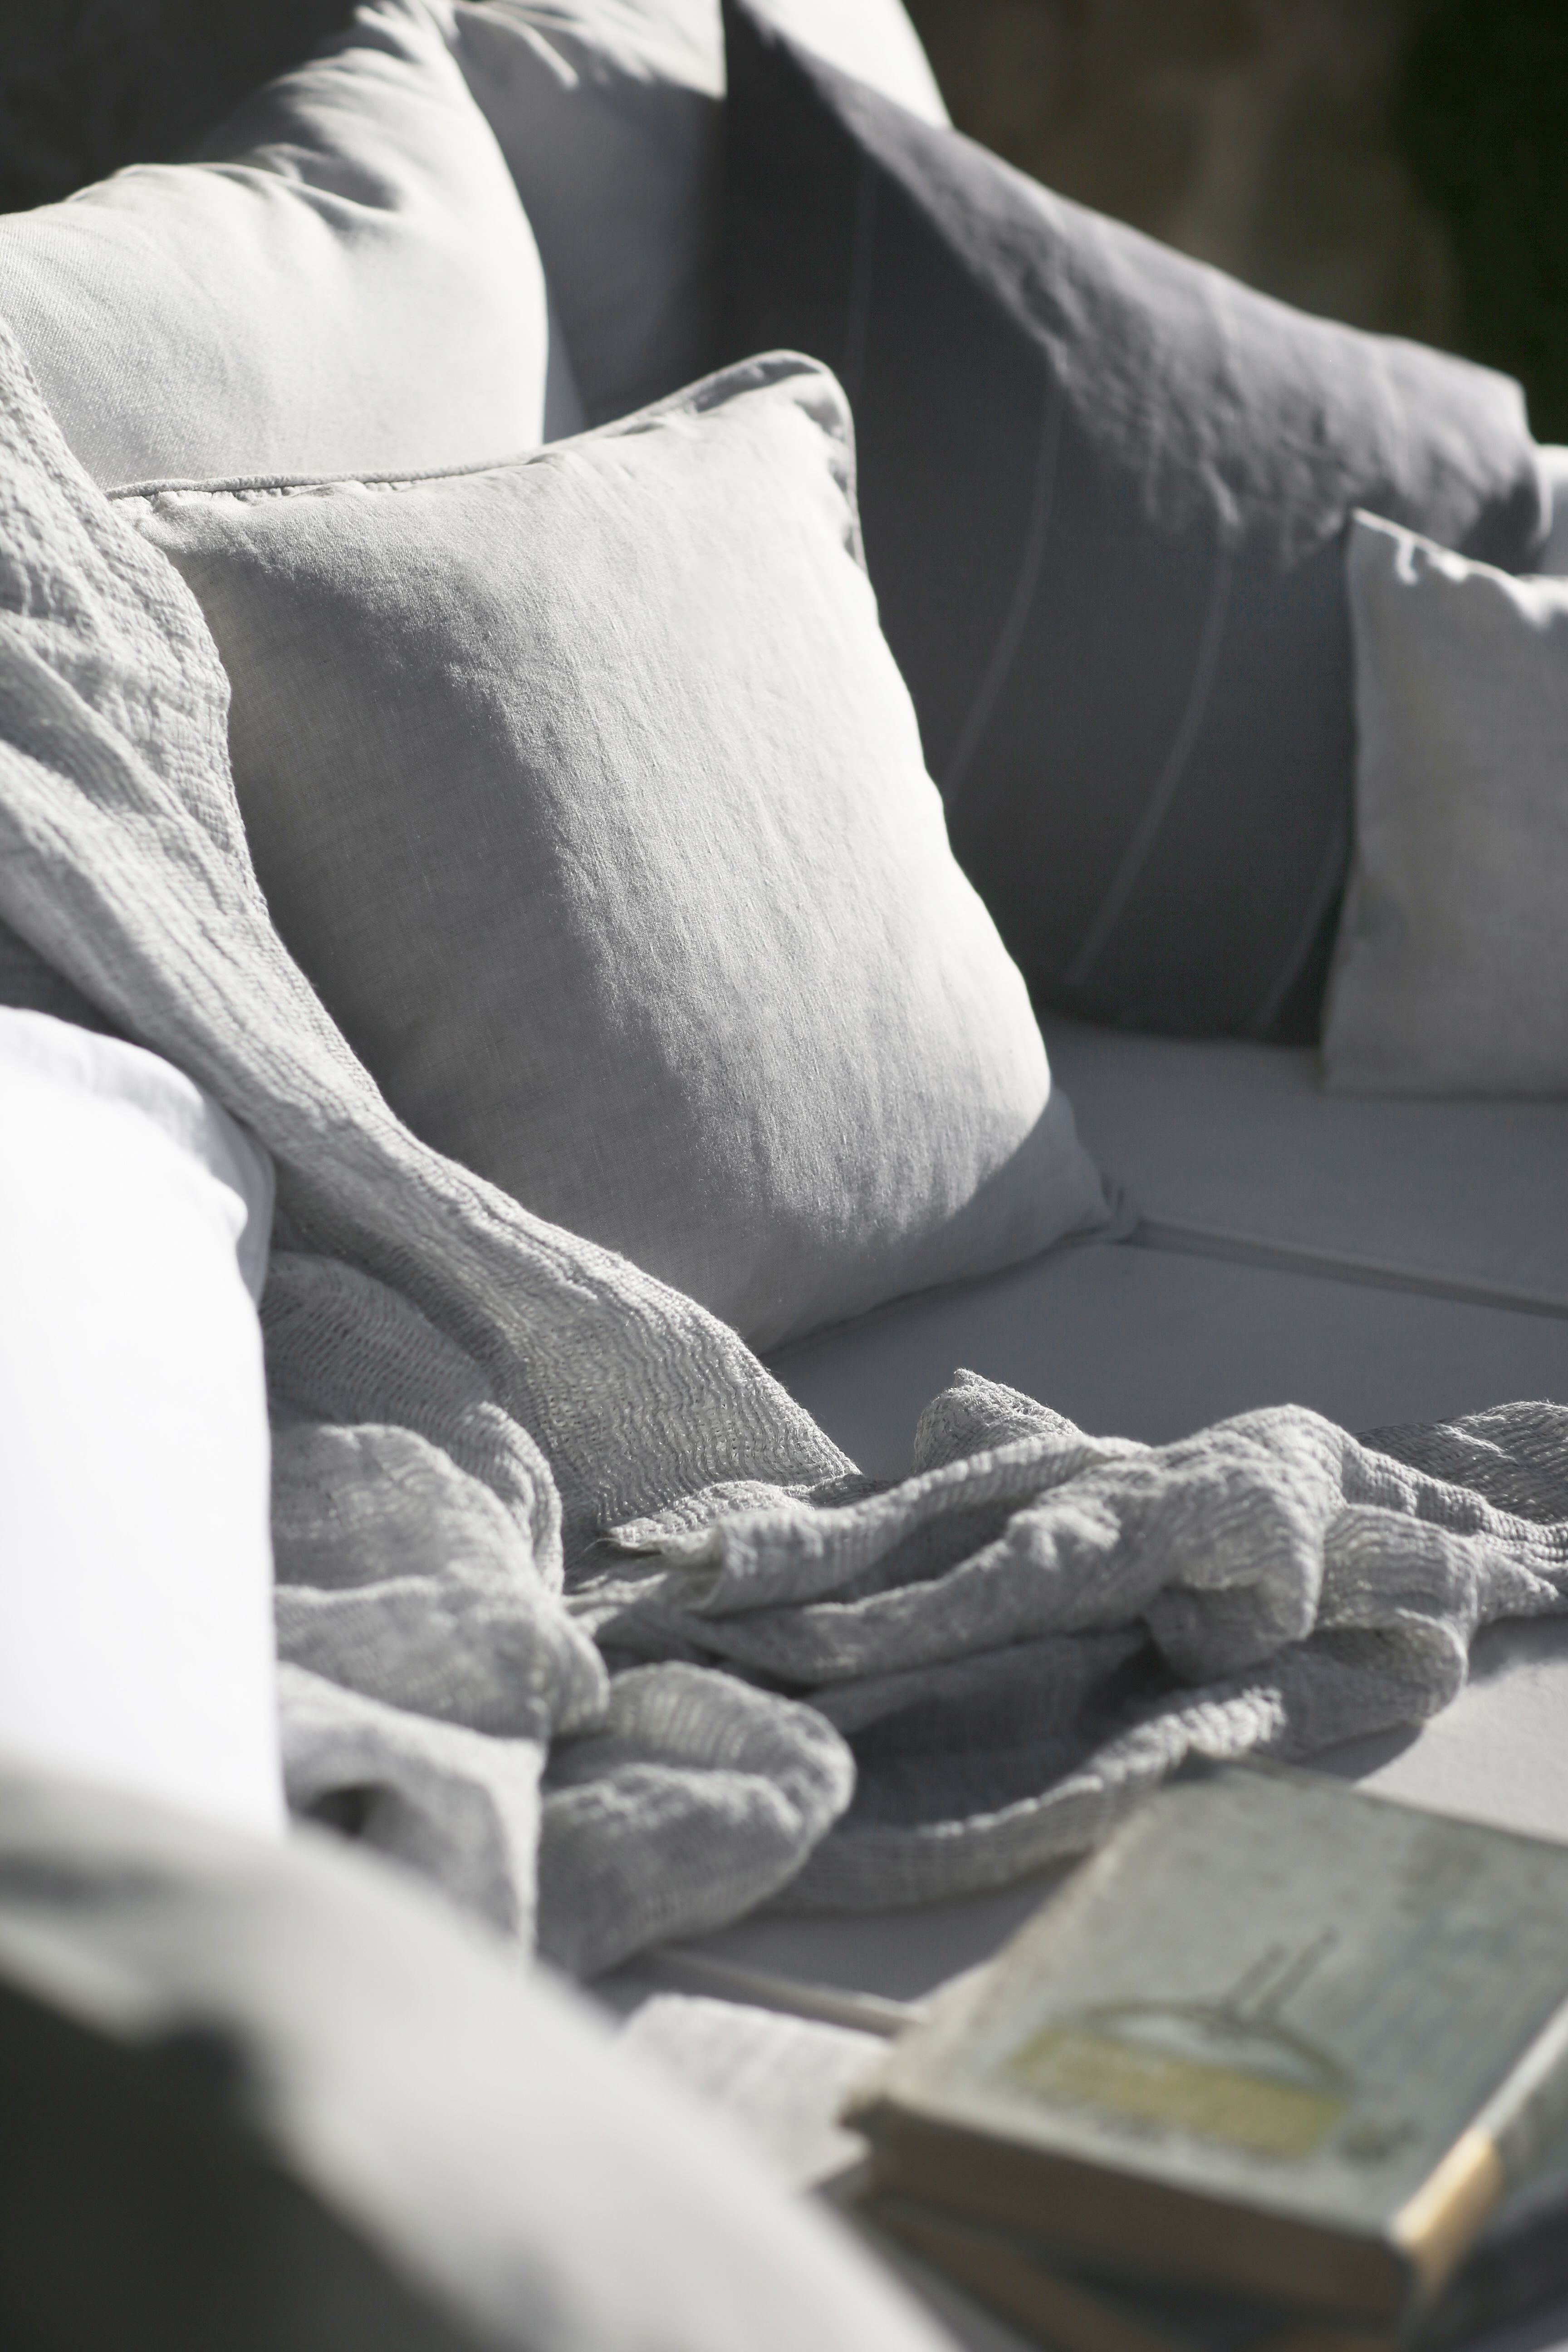 Linen Throw Soft Jacquard. Delicately woven by hand in Belgium, our Soft Jacquard Linen Throw has a distinctive, three thread weave that any linen admirer will admire. This pre-washed linen throw adds texture and softness when laid upon a bed or seat and has a timeless appearance. #thelinenworks #linen #fabrics #throws #summer #alfresco #naturalhome